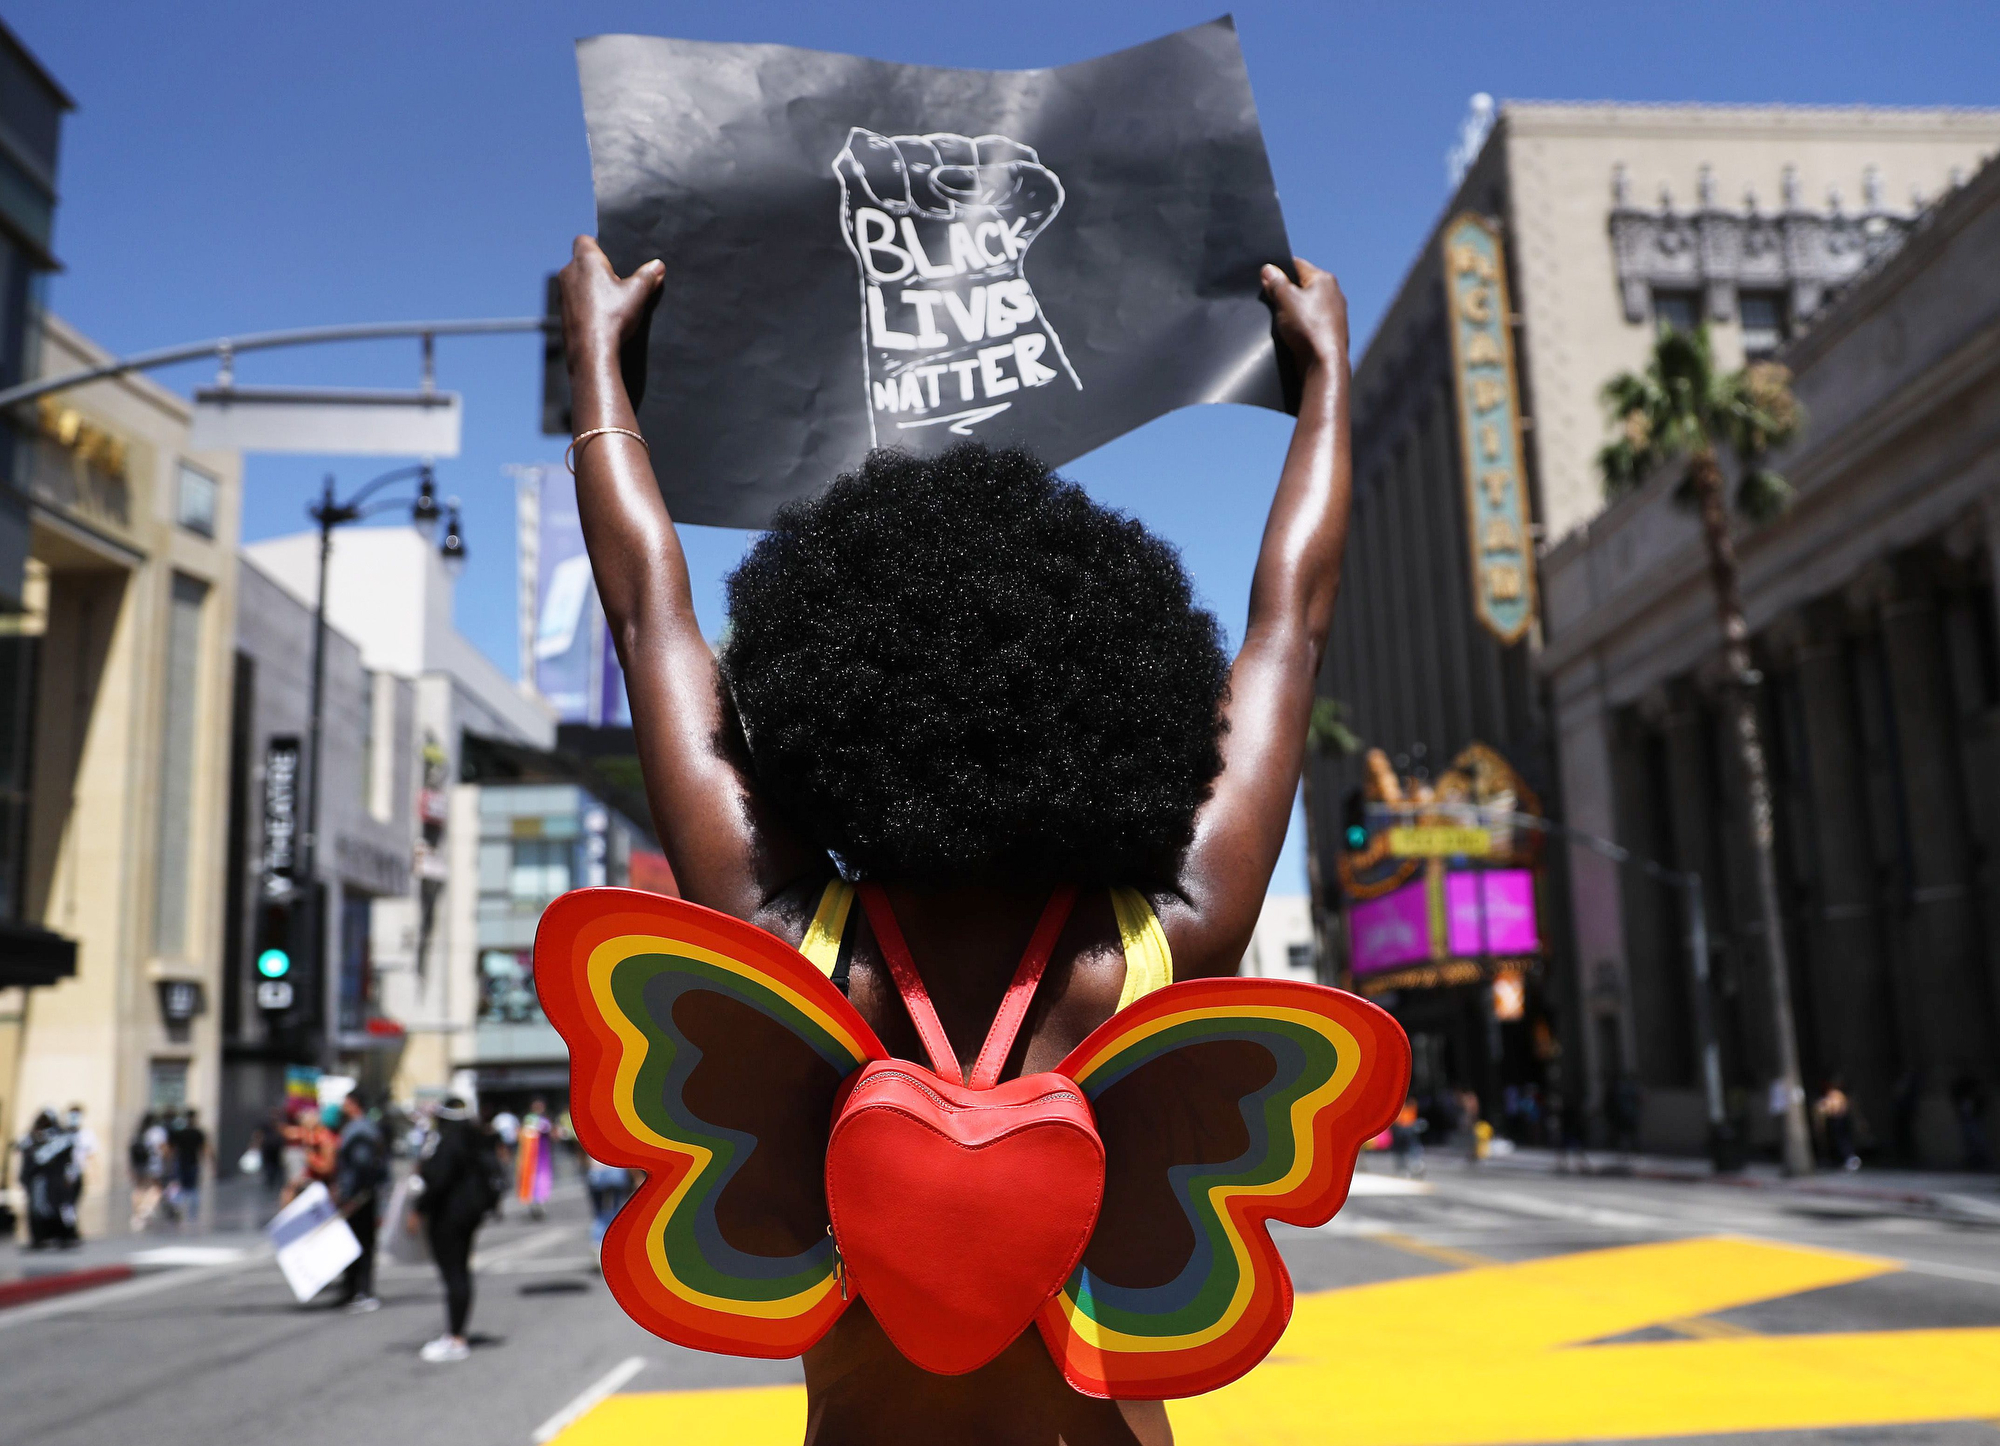 A protester strikes a pose while holding a 'Black Lives Matter' sign on Hollywood Boulevard during the All Black Lives Matter solidarity march on June 14, 2020 in Los Angeles.